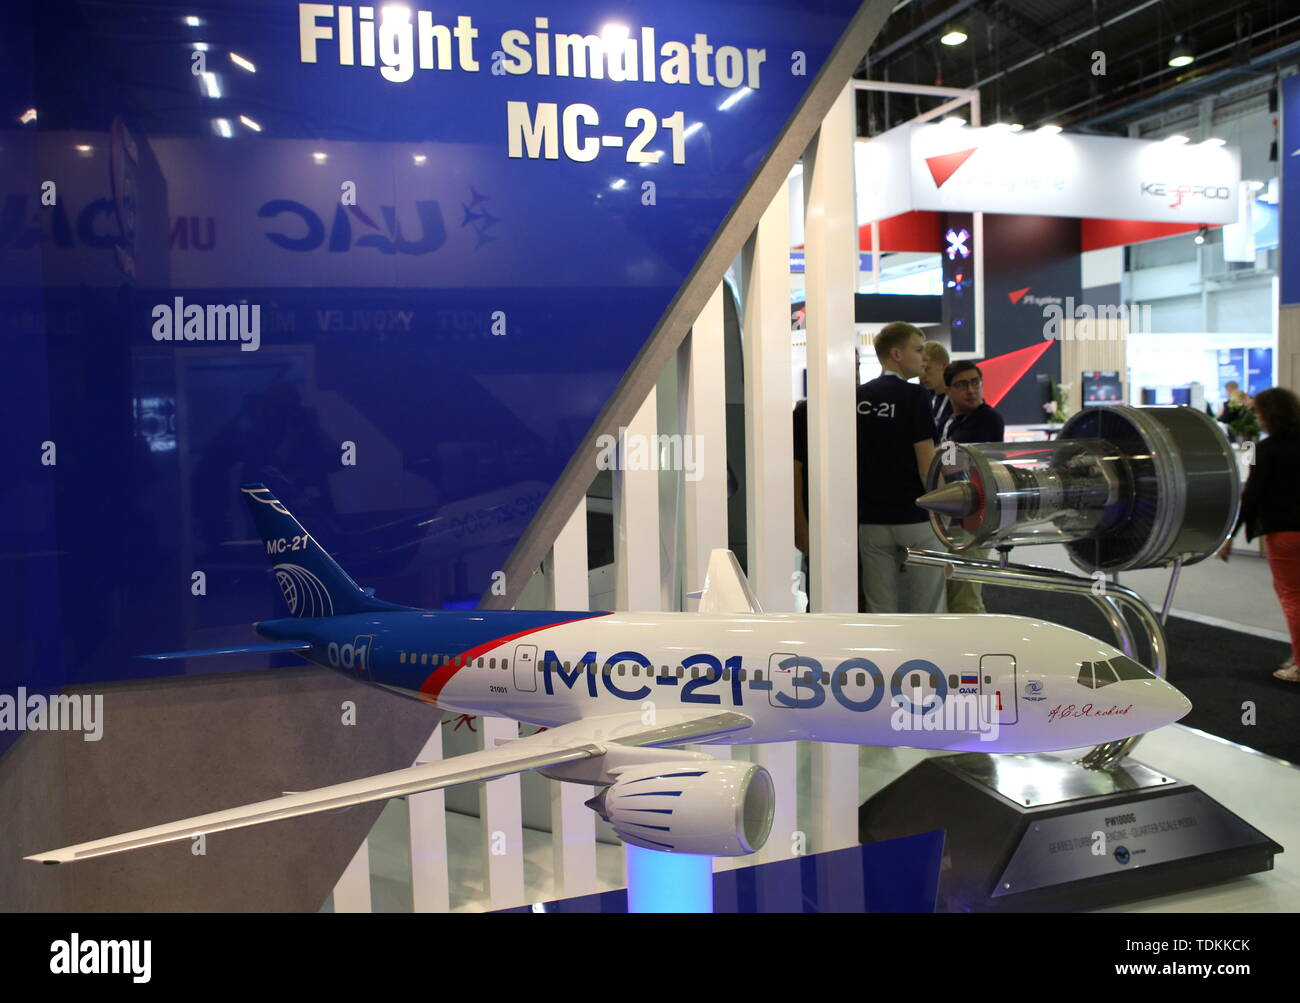 France. 17th June, 2019. Paris, France. 17th June, 2019A scale model of an Irkut MC-21 medium- and long-range narrow-body twinjet airliner, developed by UAC (United Aircraft Corporation), on display at the 2019 Paris Air Show opened at Le Bourget Airport. Marina Lystseva/TASS Credit: ITAR-TASS News Agency/Alamy Live News - Stock Image